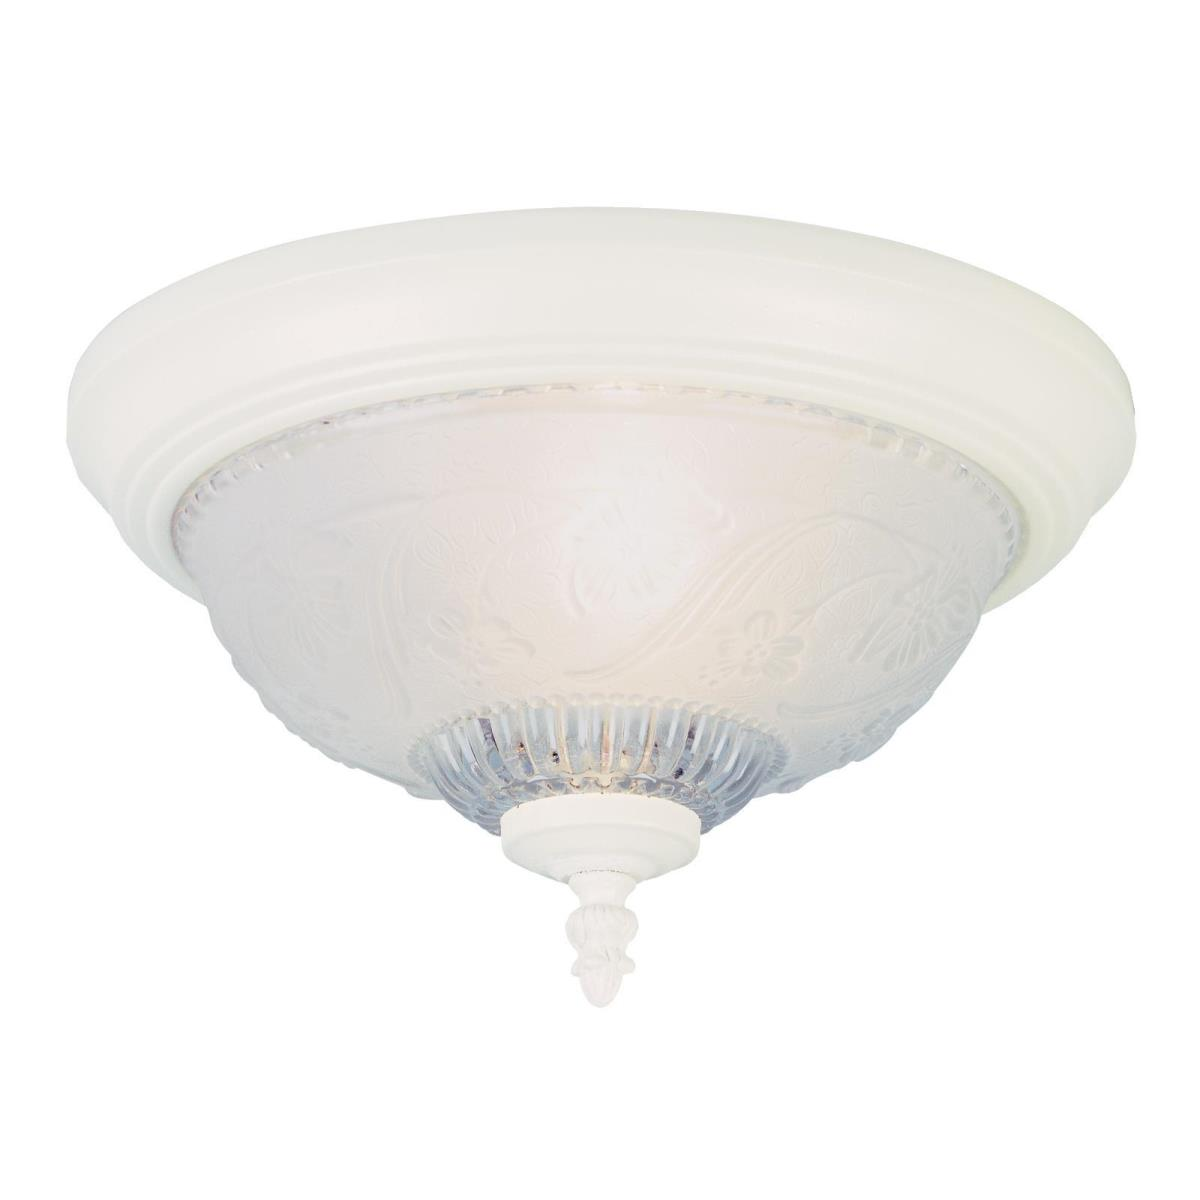 1 Light Flush Ceiling Fixture Textured White Finish with Embossed Floral and Leaf Design Glass